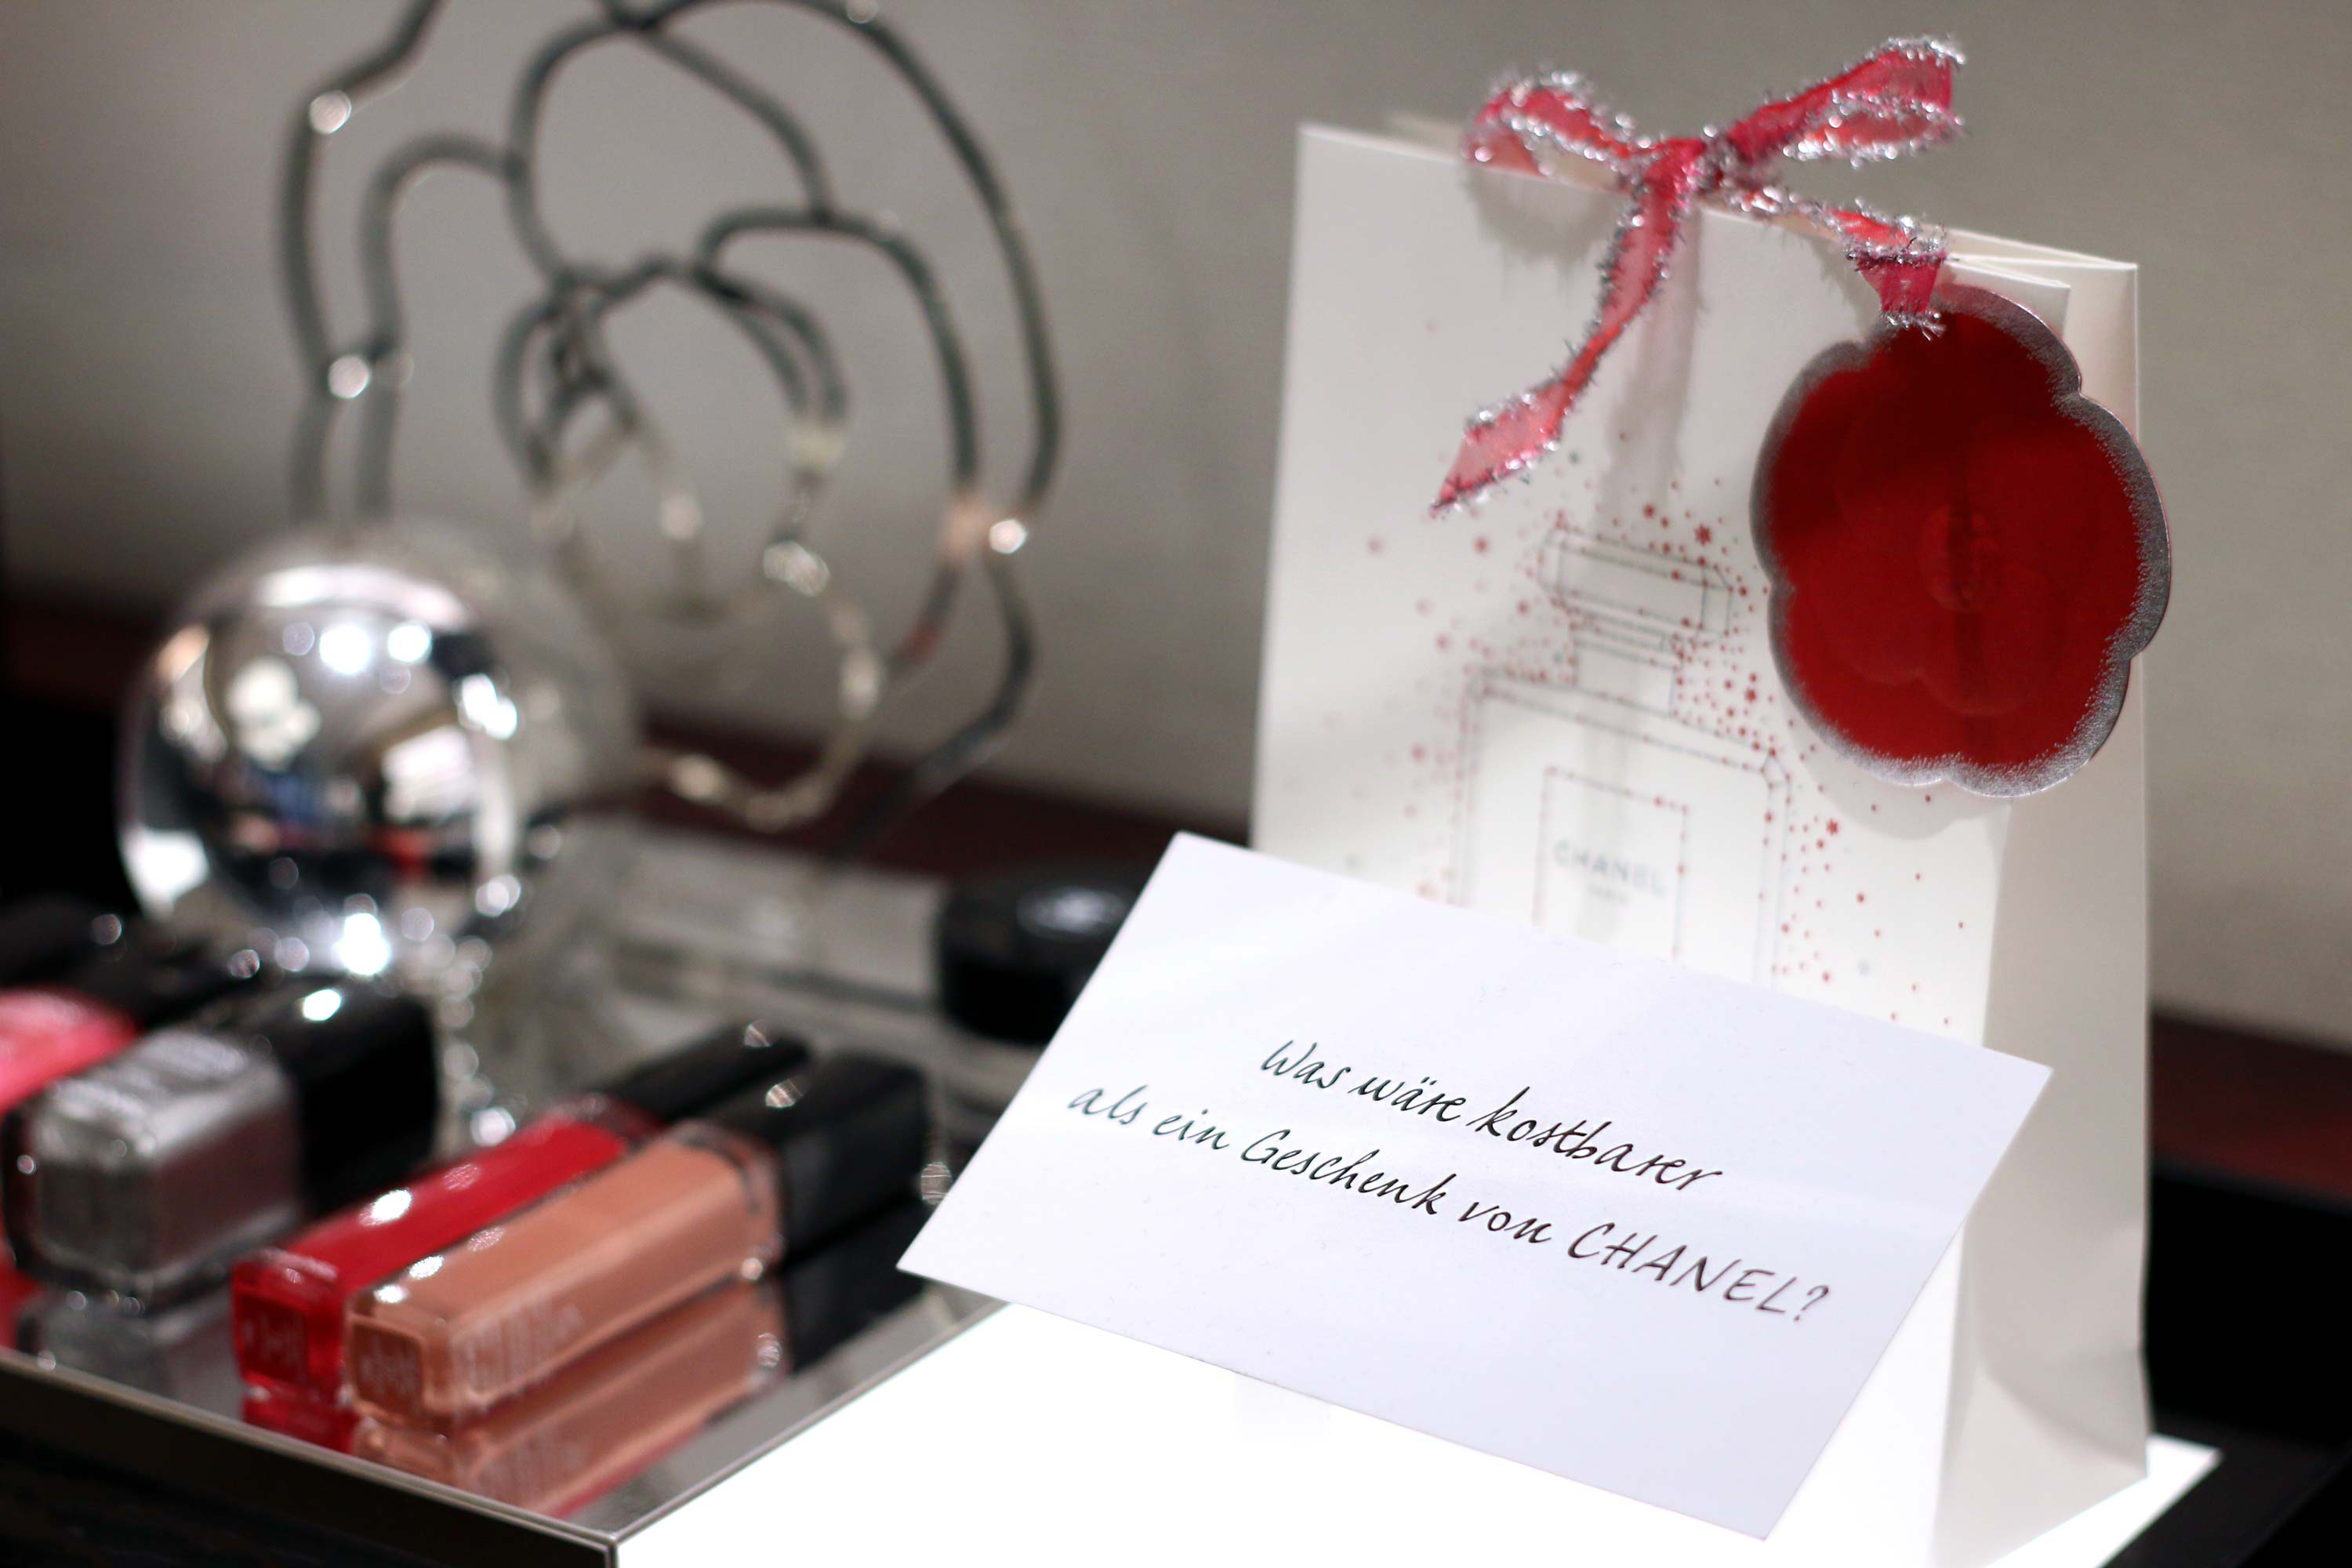 chanel-beauty-boutique-hamburg-15